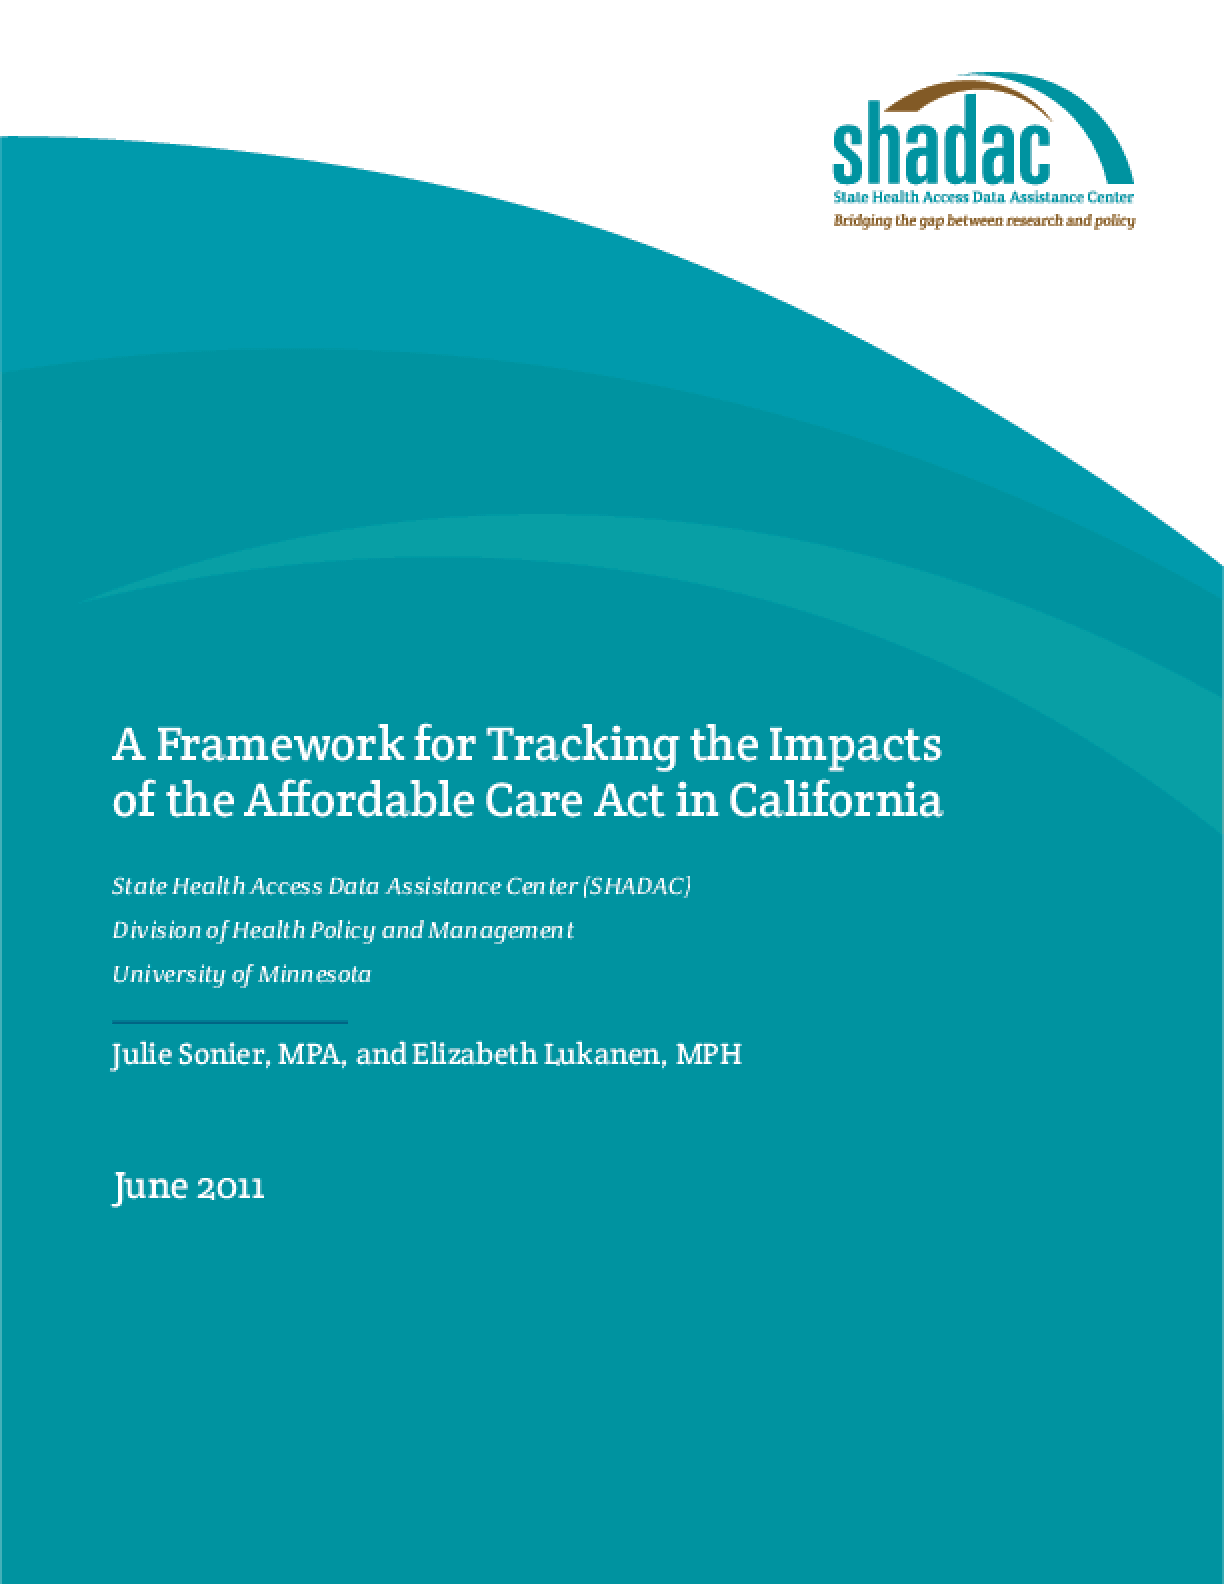 A Framework for Tracking the Impacts of the Affordable Care Act in California